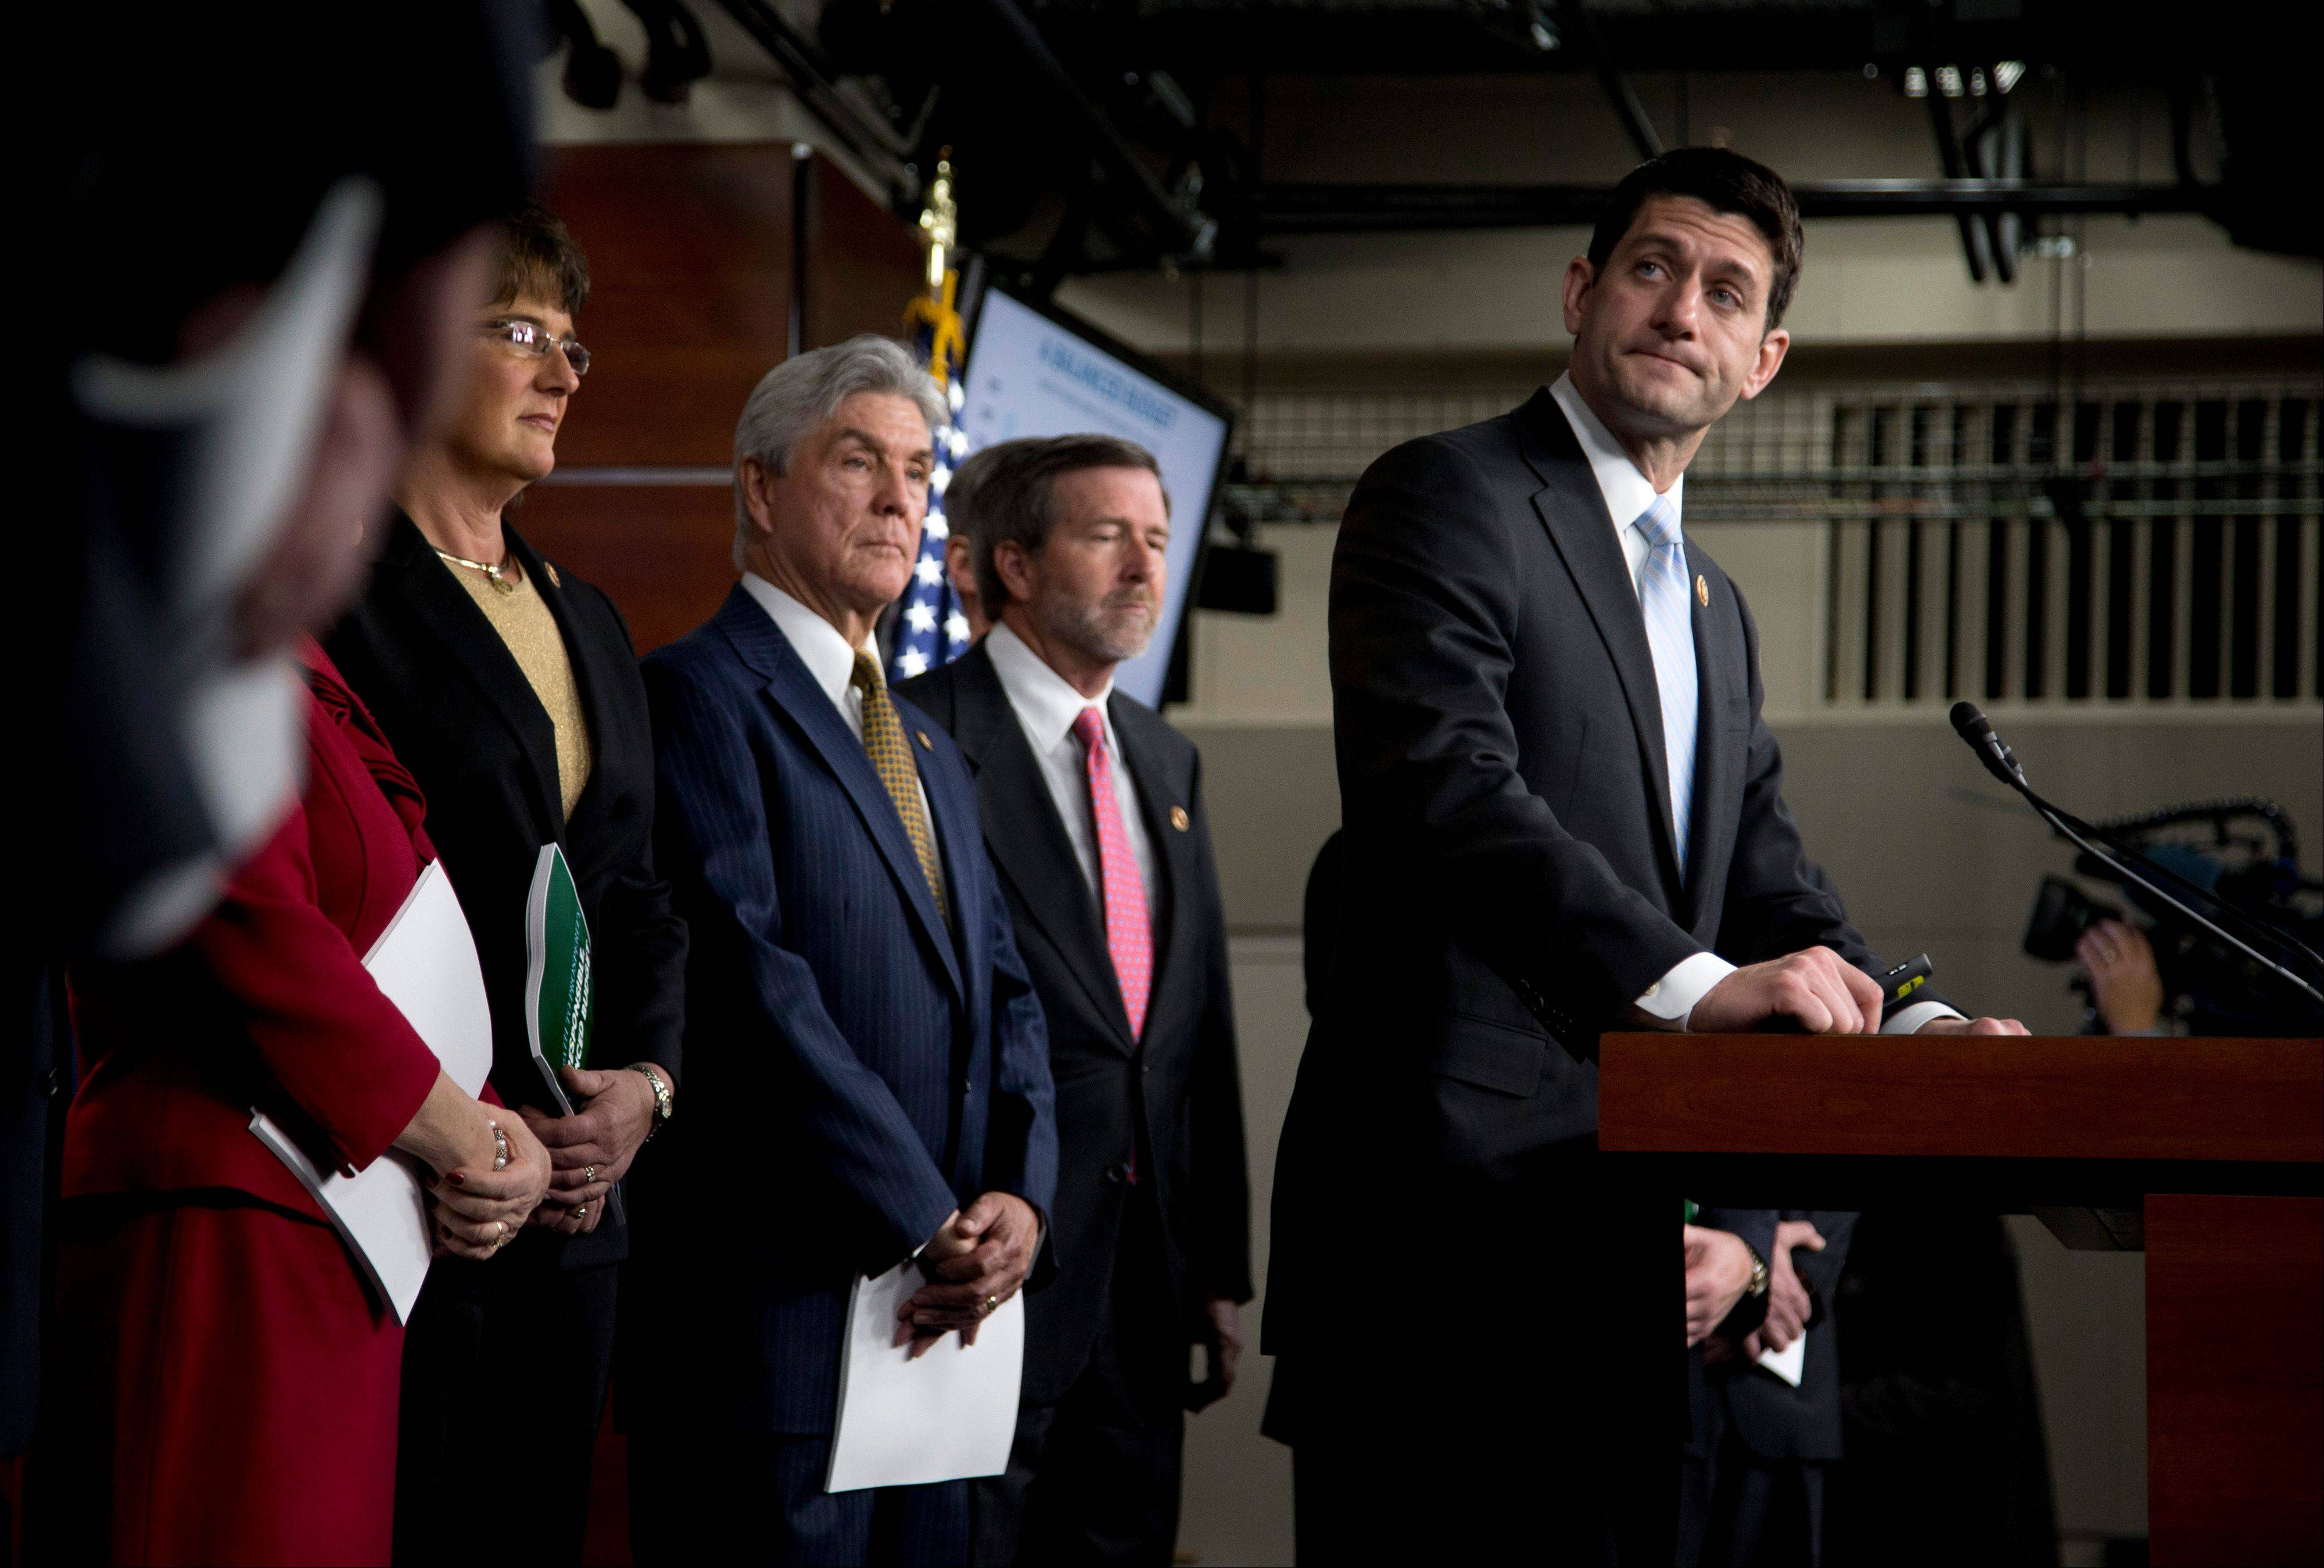 House Budget Committee Chairman Rep. Paul Ryan, R-Wis., right, pauses during a news conference on Capitol Hill in Washington, Tuesday.